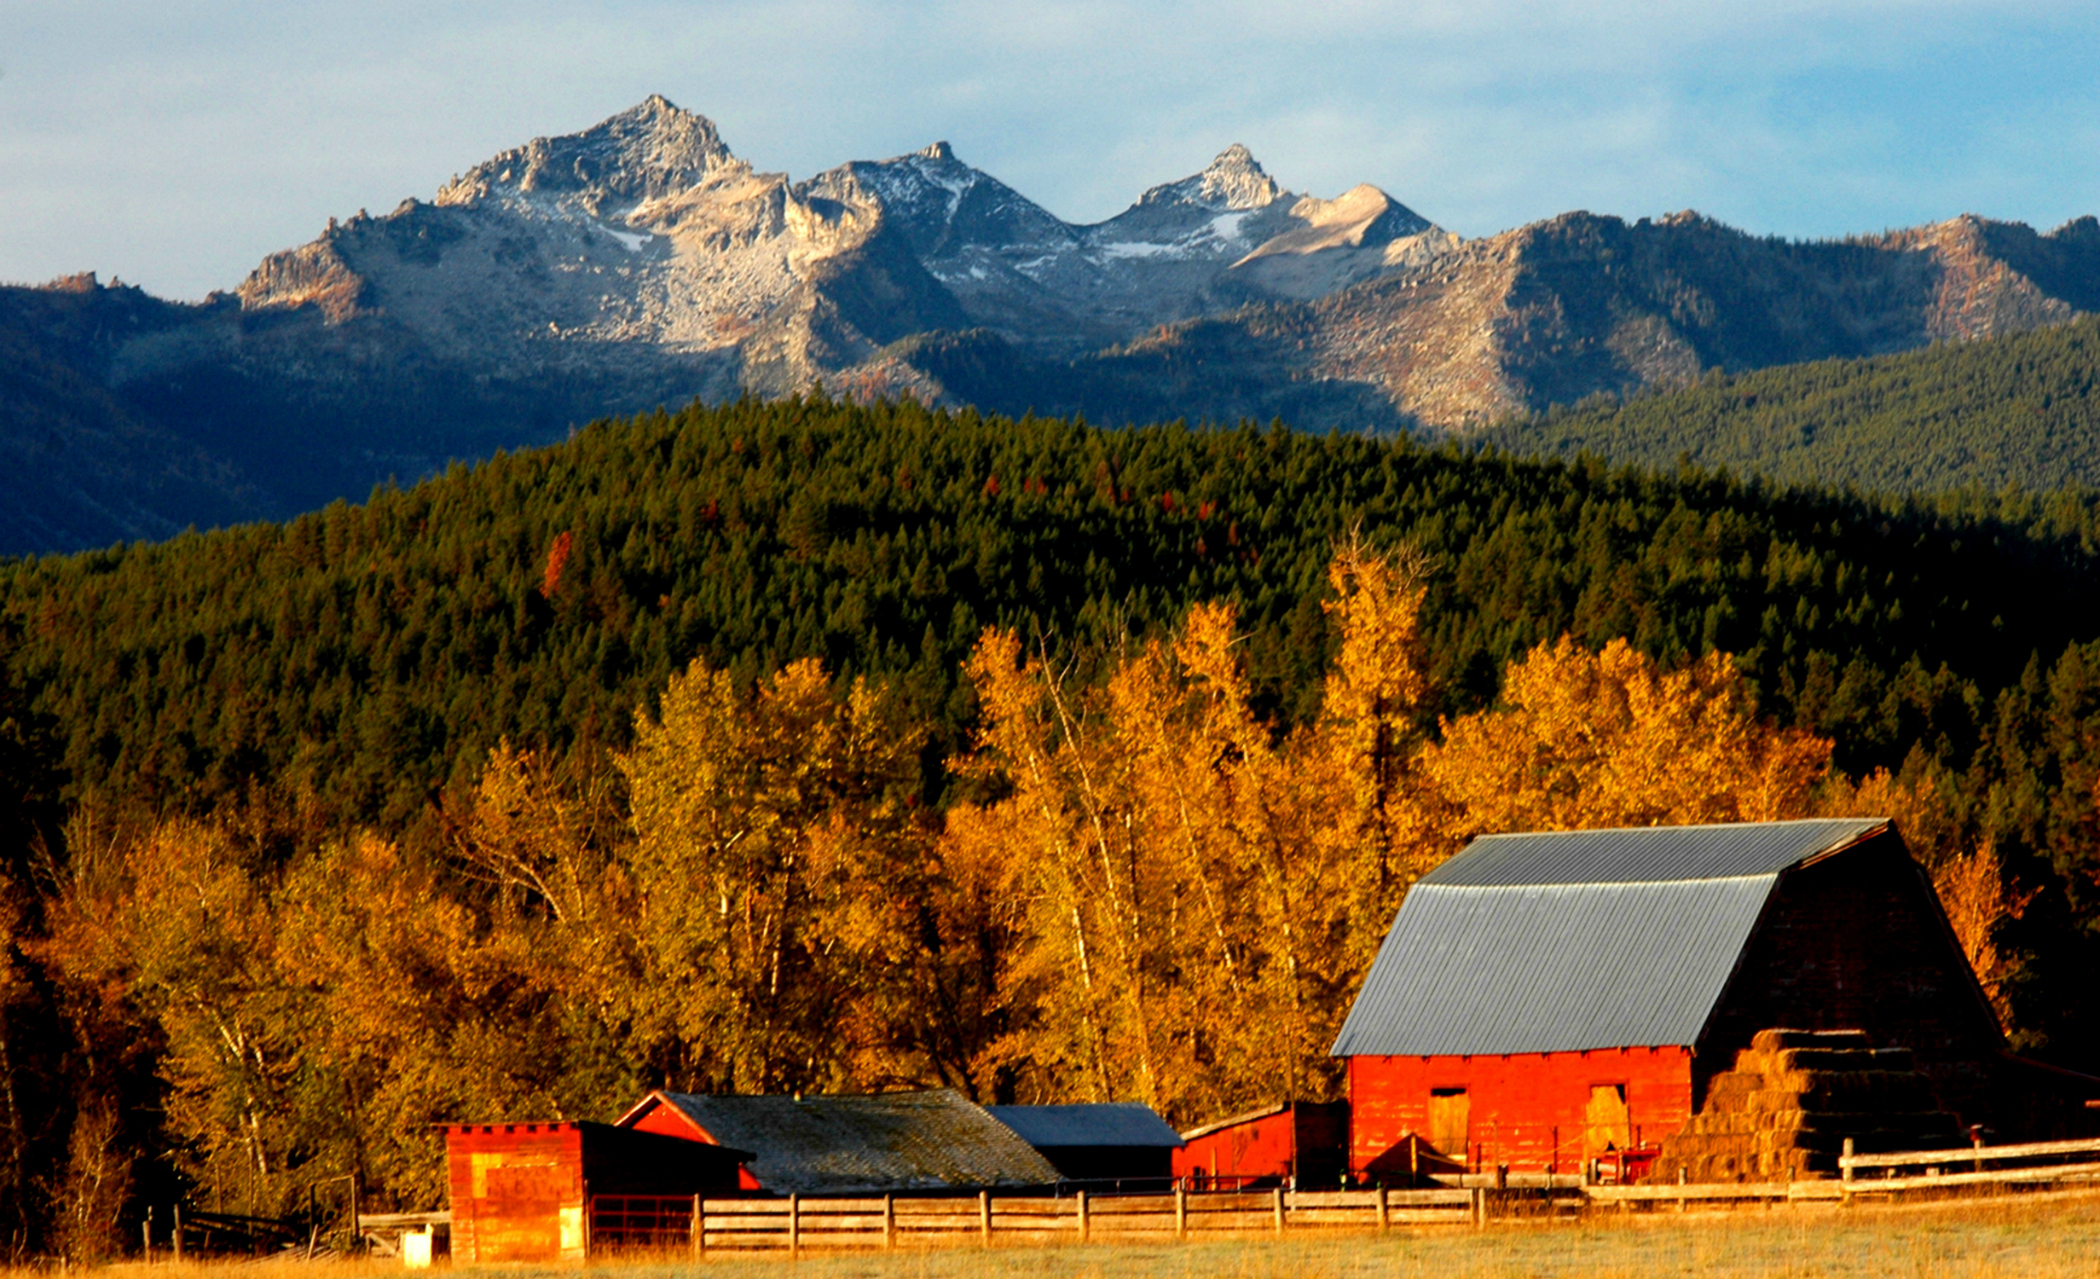 A red barn sits at the base of rolling hills and peaks, all covered in golden sunlight.